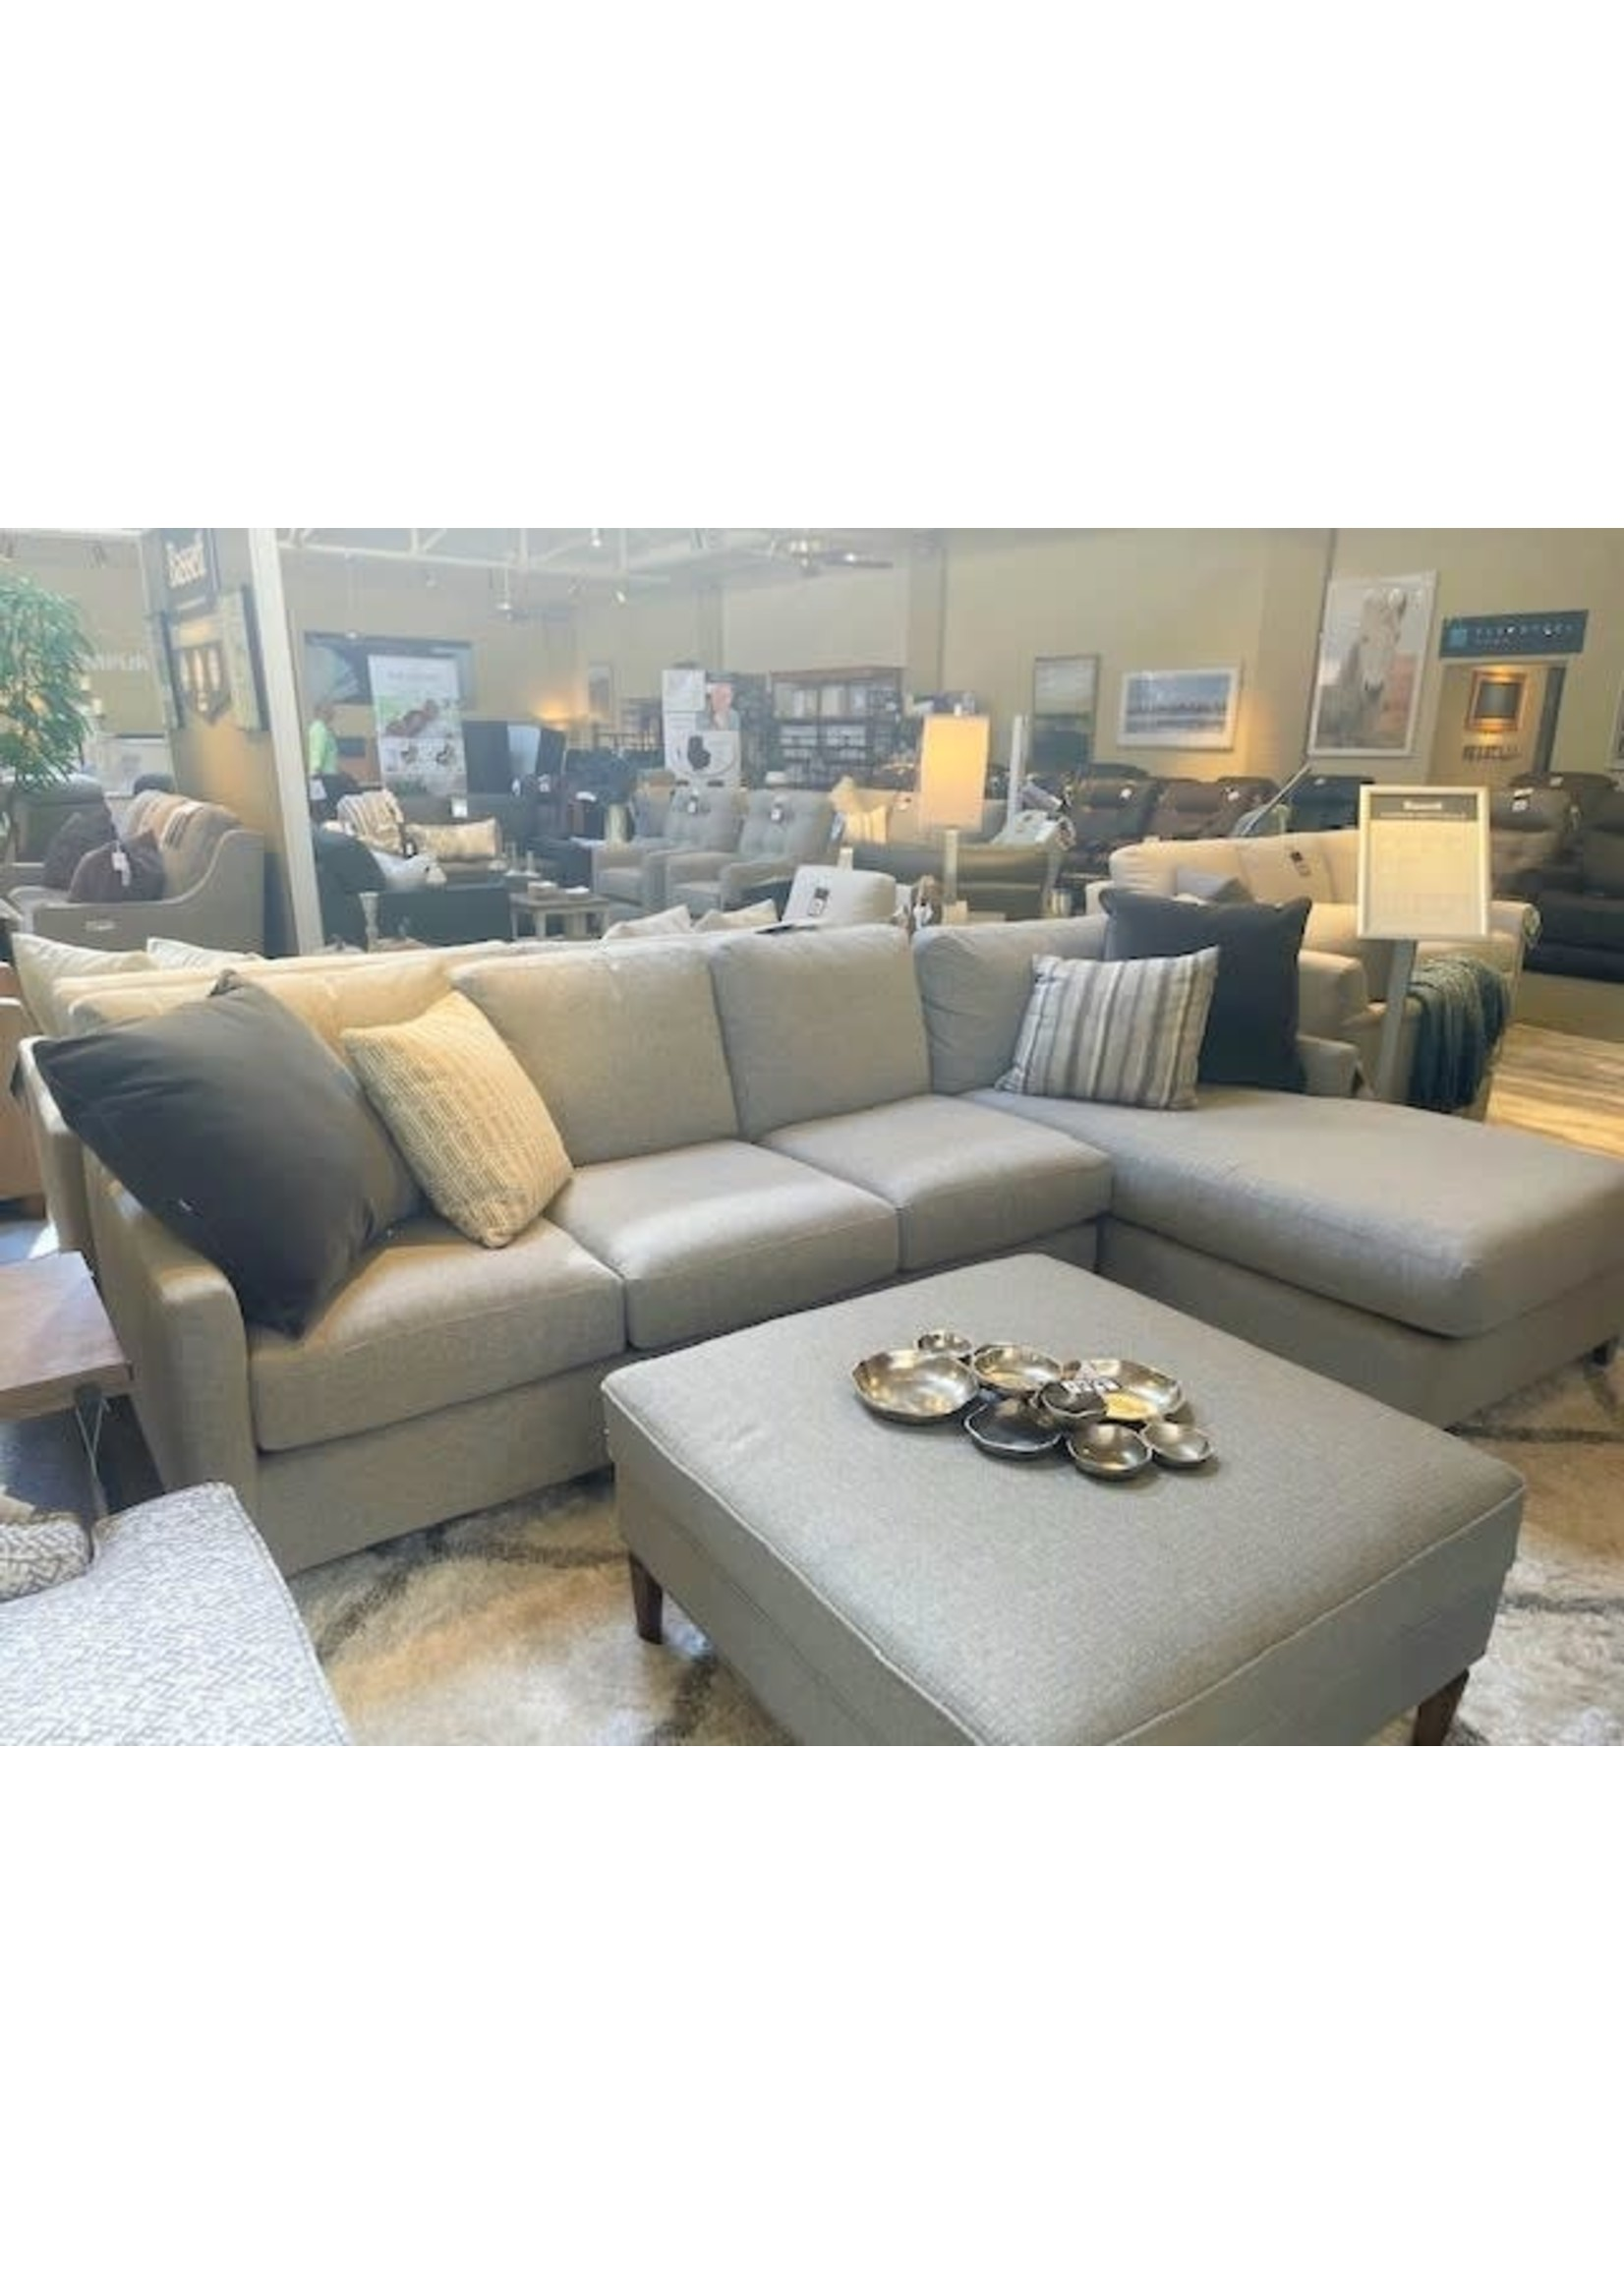 CUSTOM LAF/CHAISE SECTIONAL